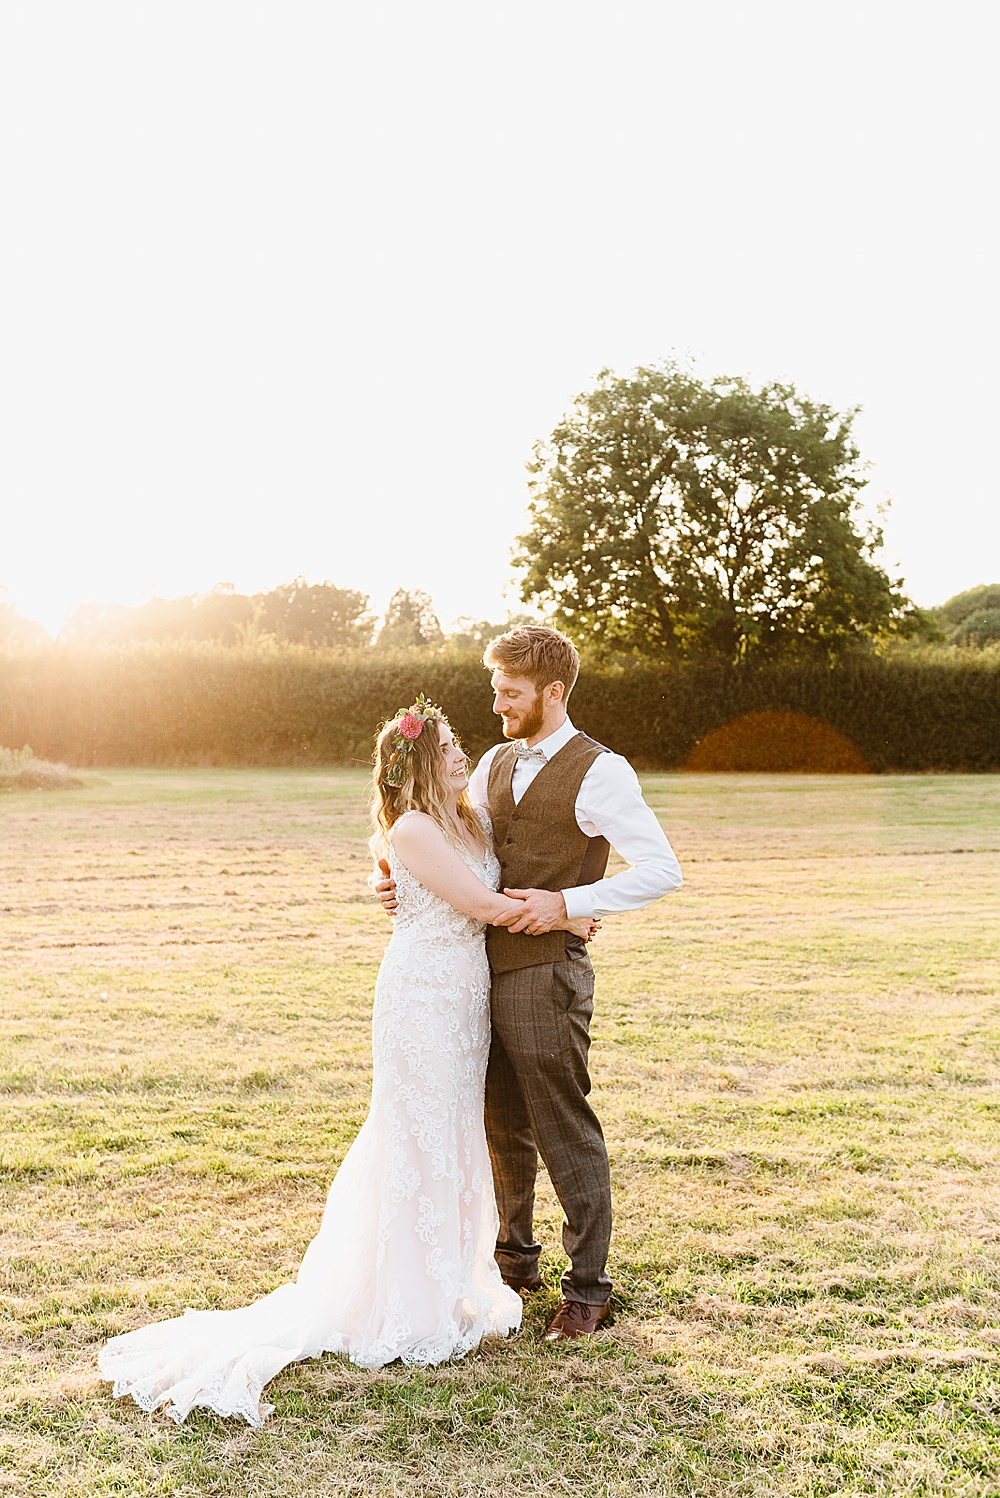 Dress Gown Bride Bridal Lace Pink Kenneth Winston DIY Tipi Wedding Fiona Kelly Photography